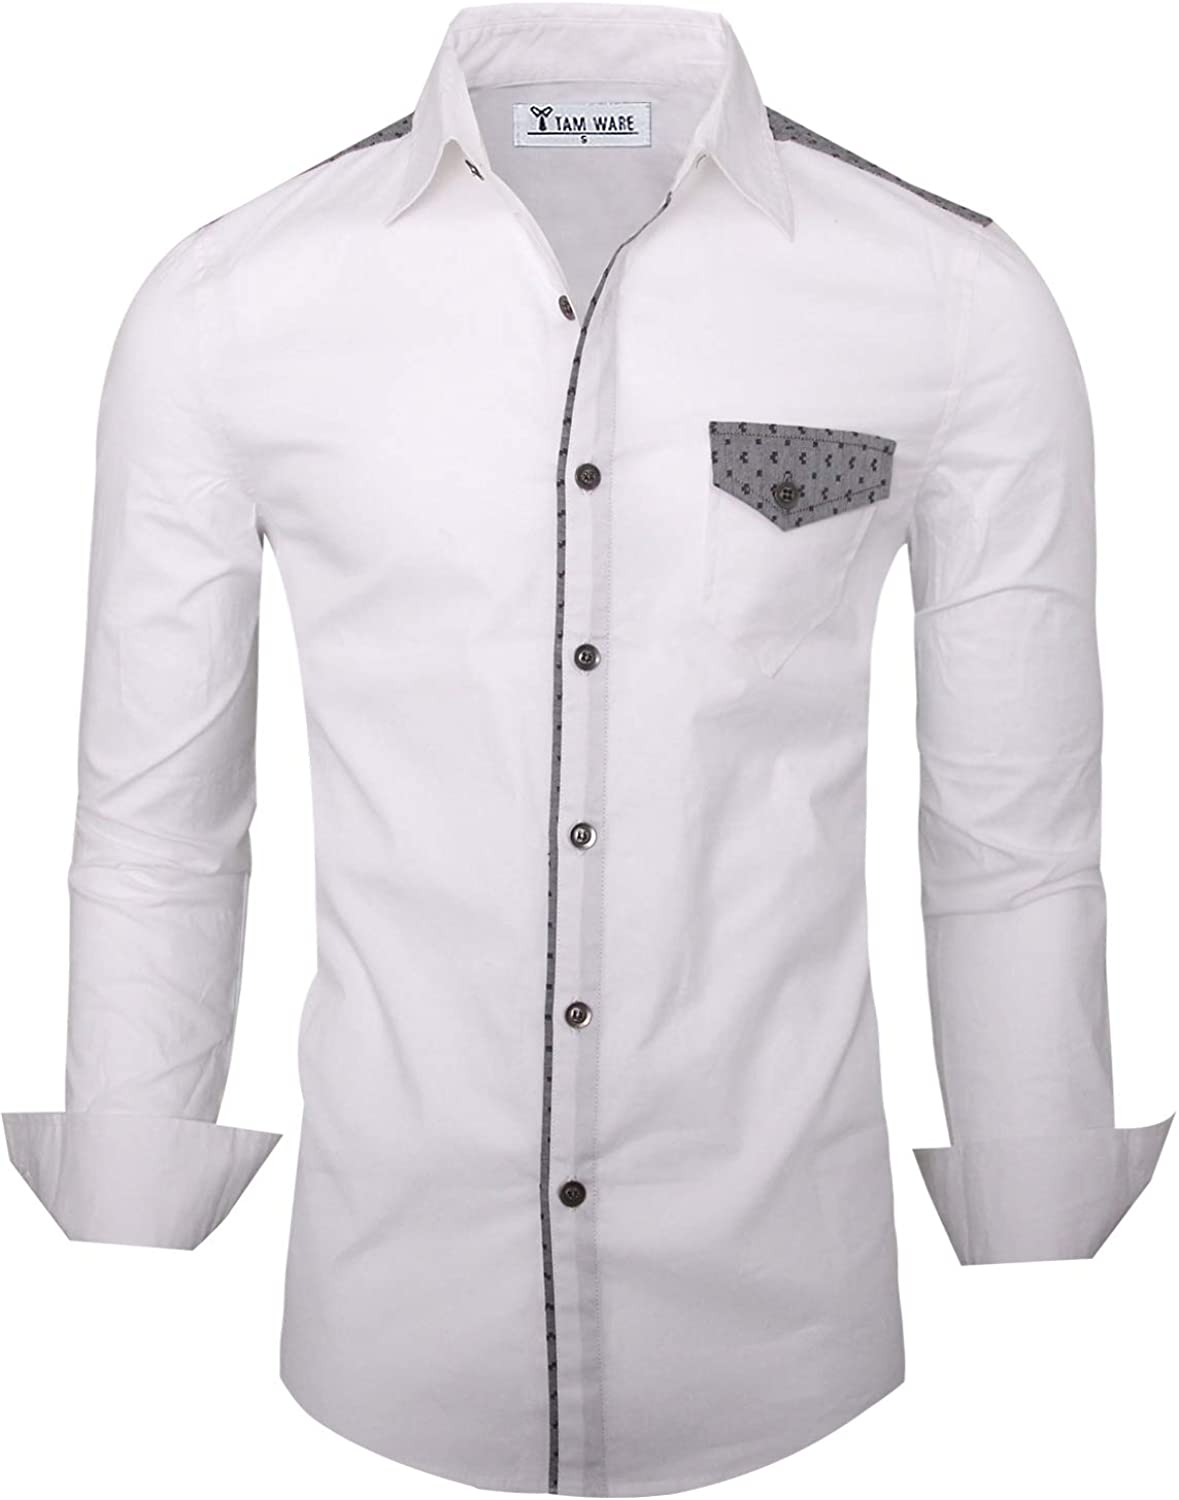 TAM WARE Men's Stylish Slim Fit Two-Toned Long Sleeve Button Down Shirt